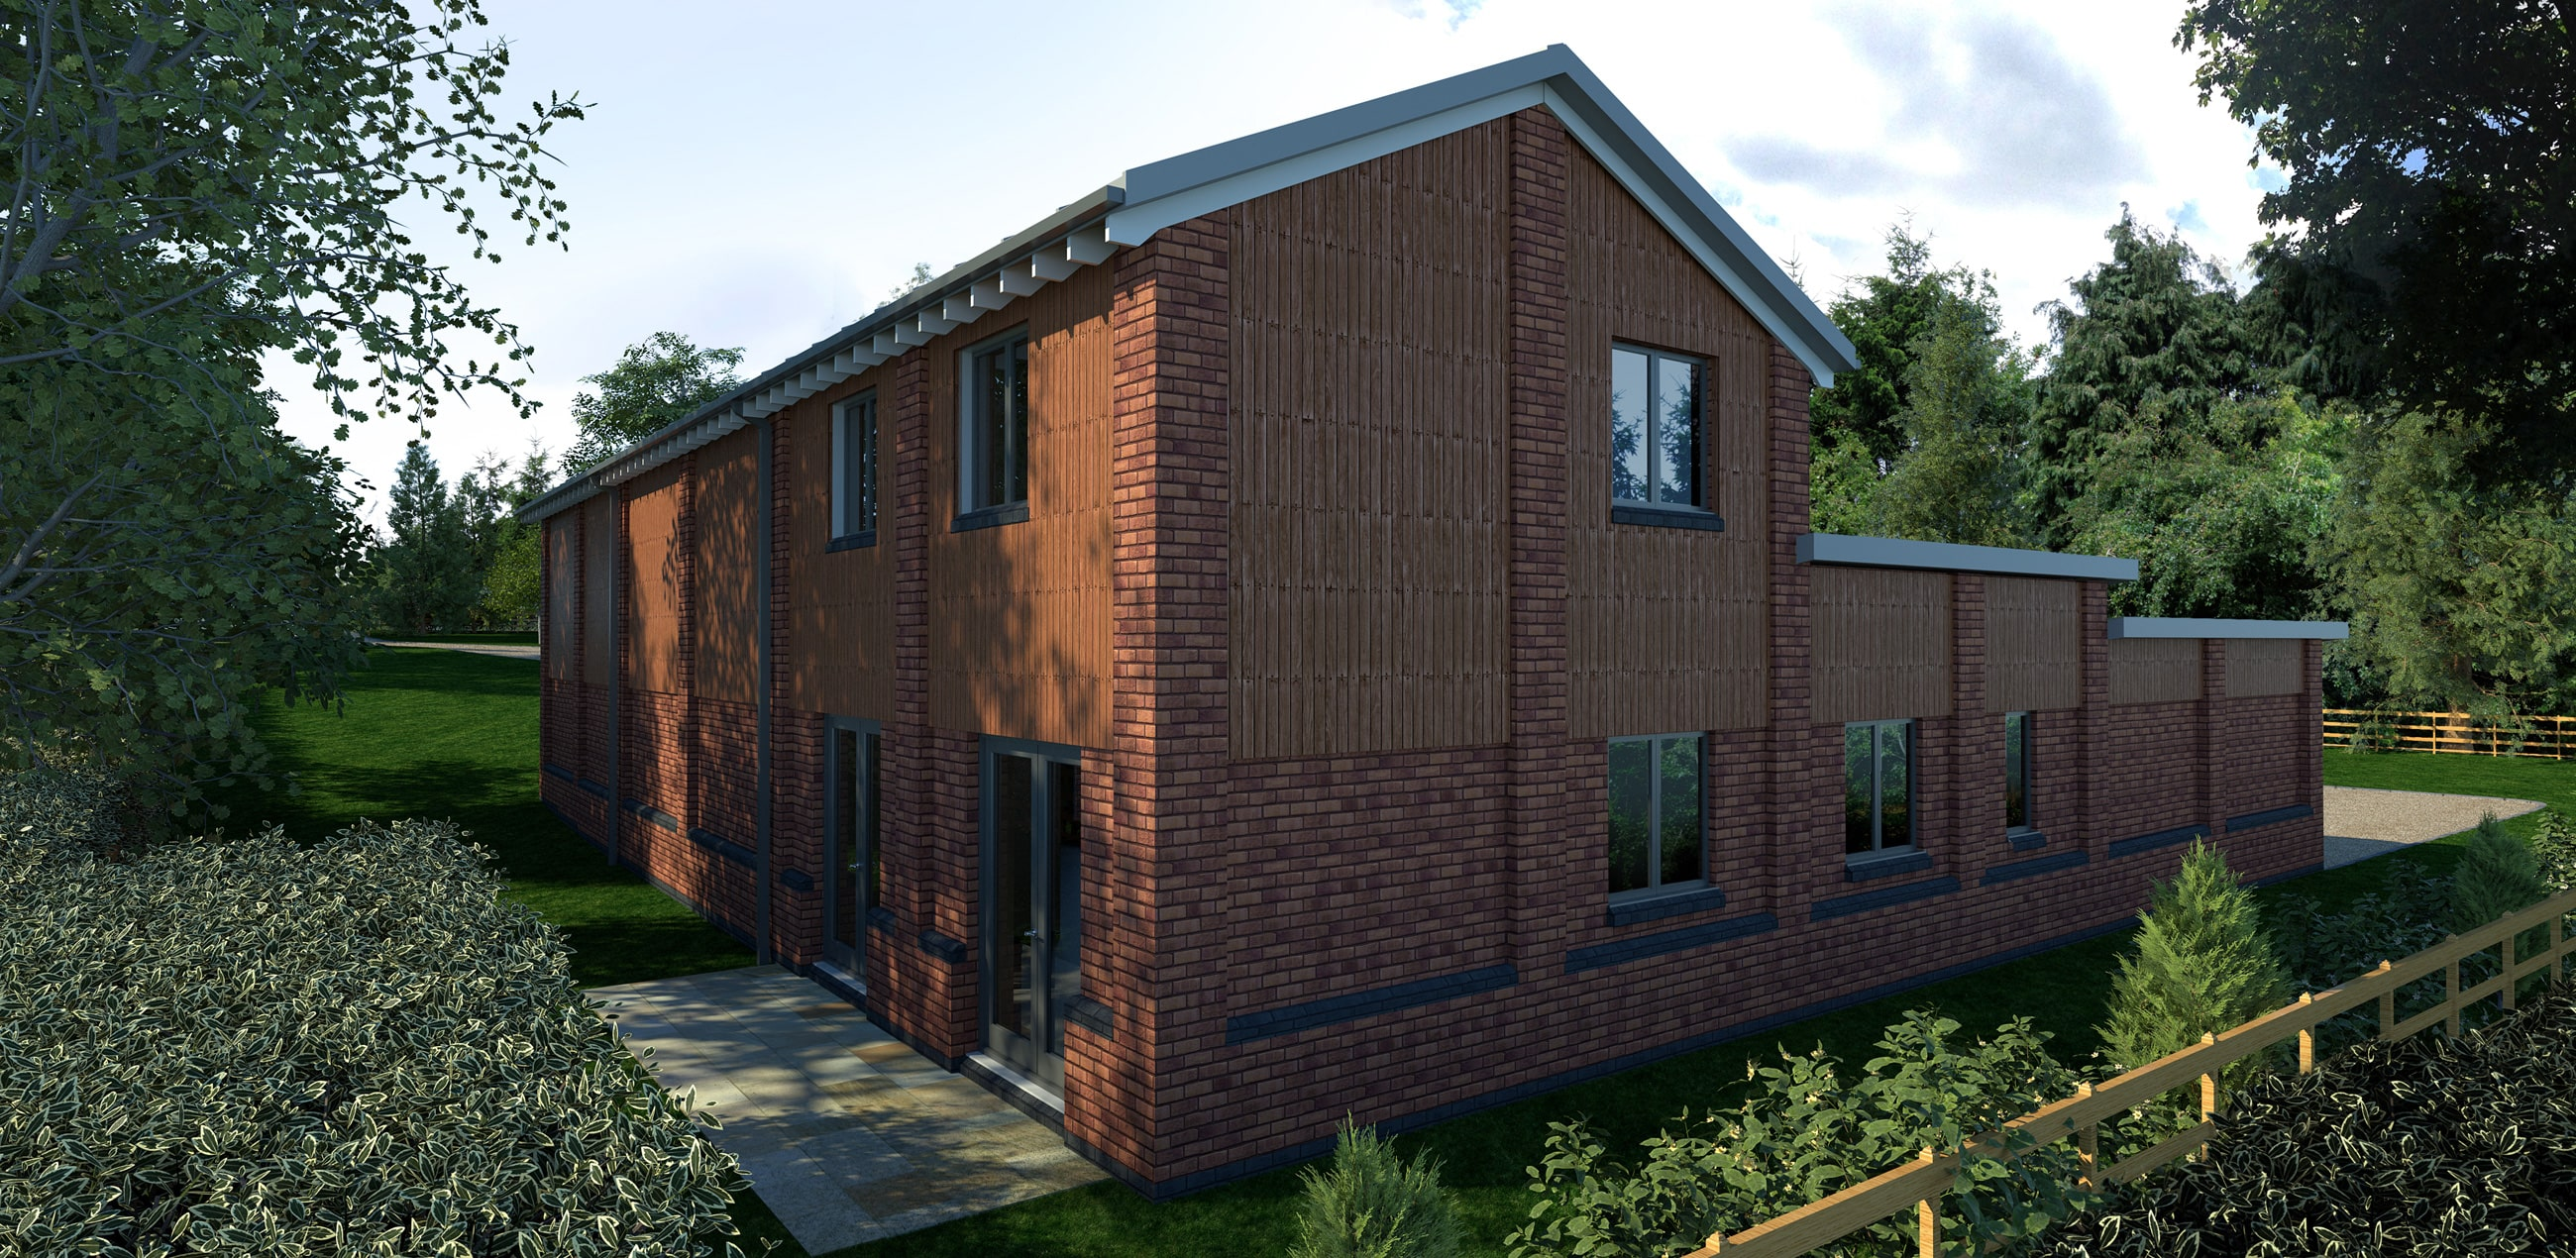 Photo realistic architectural rendering for new build visualisation